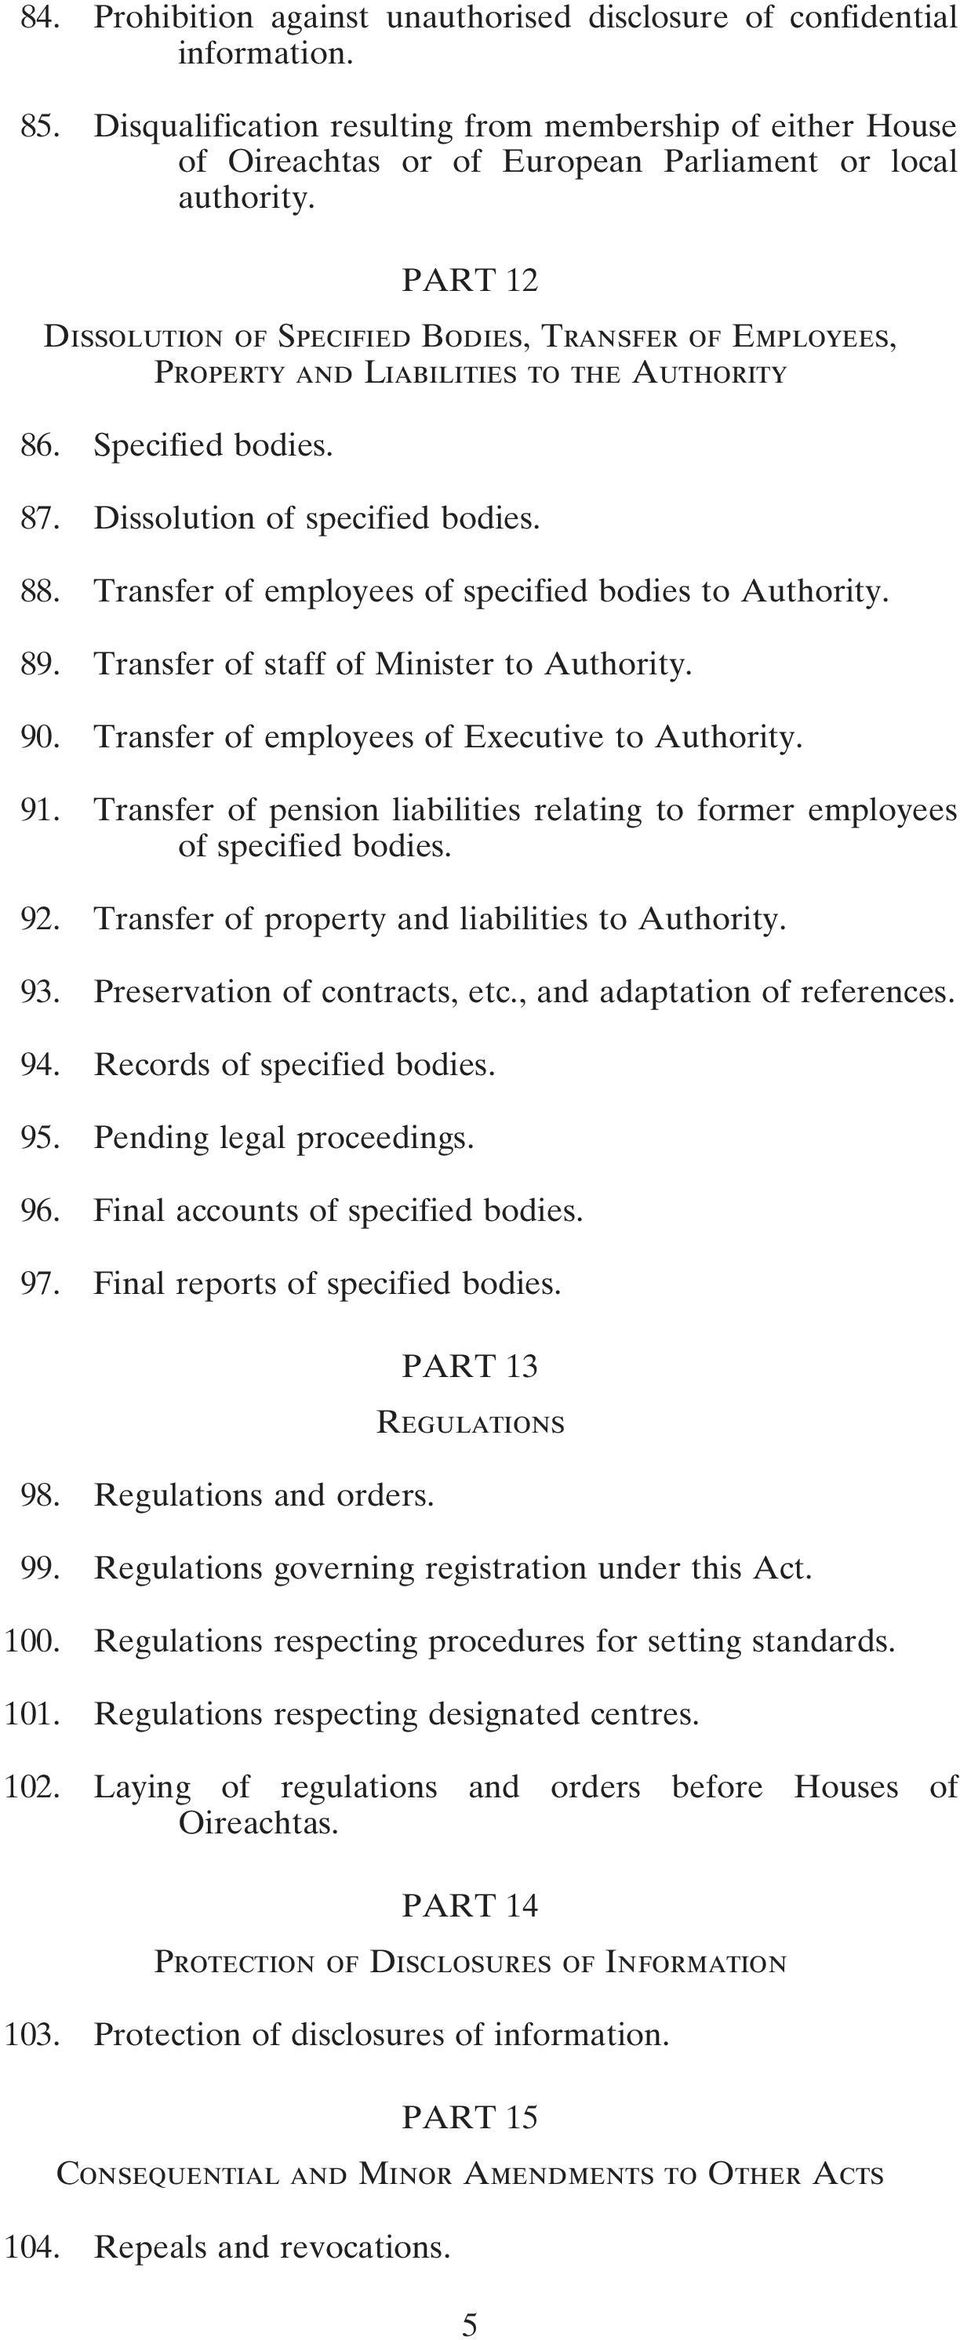 Transfer of employees of specified bodies to Authority. 89. Transfer of staff of Minister to Authority. 90. Transfer of employees of Executive to Authority. 91.